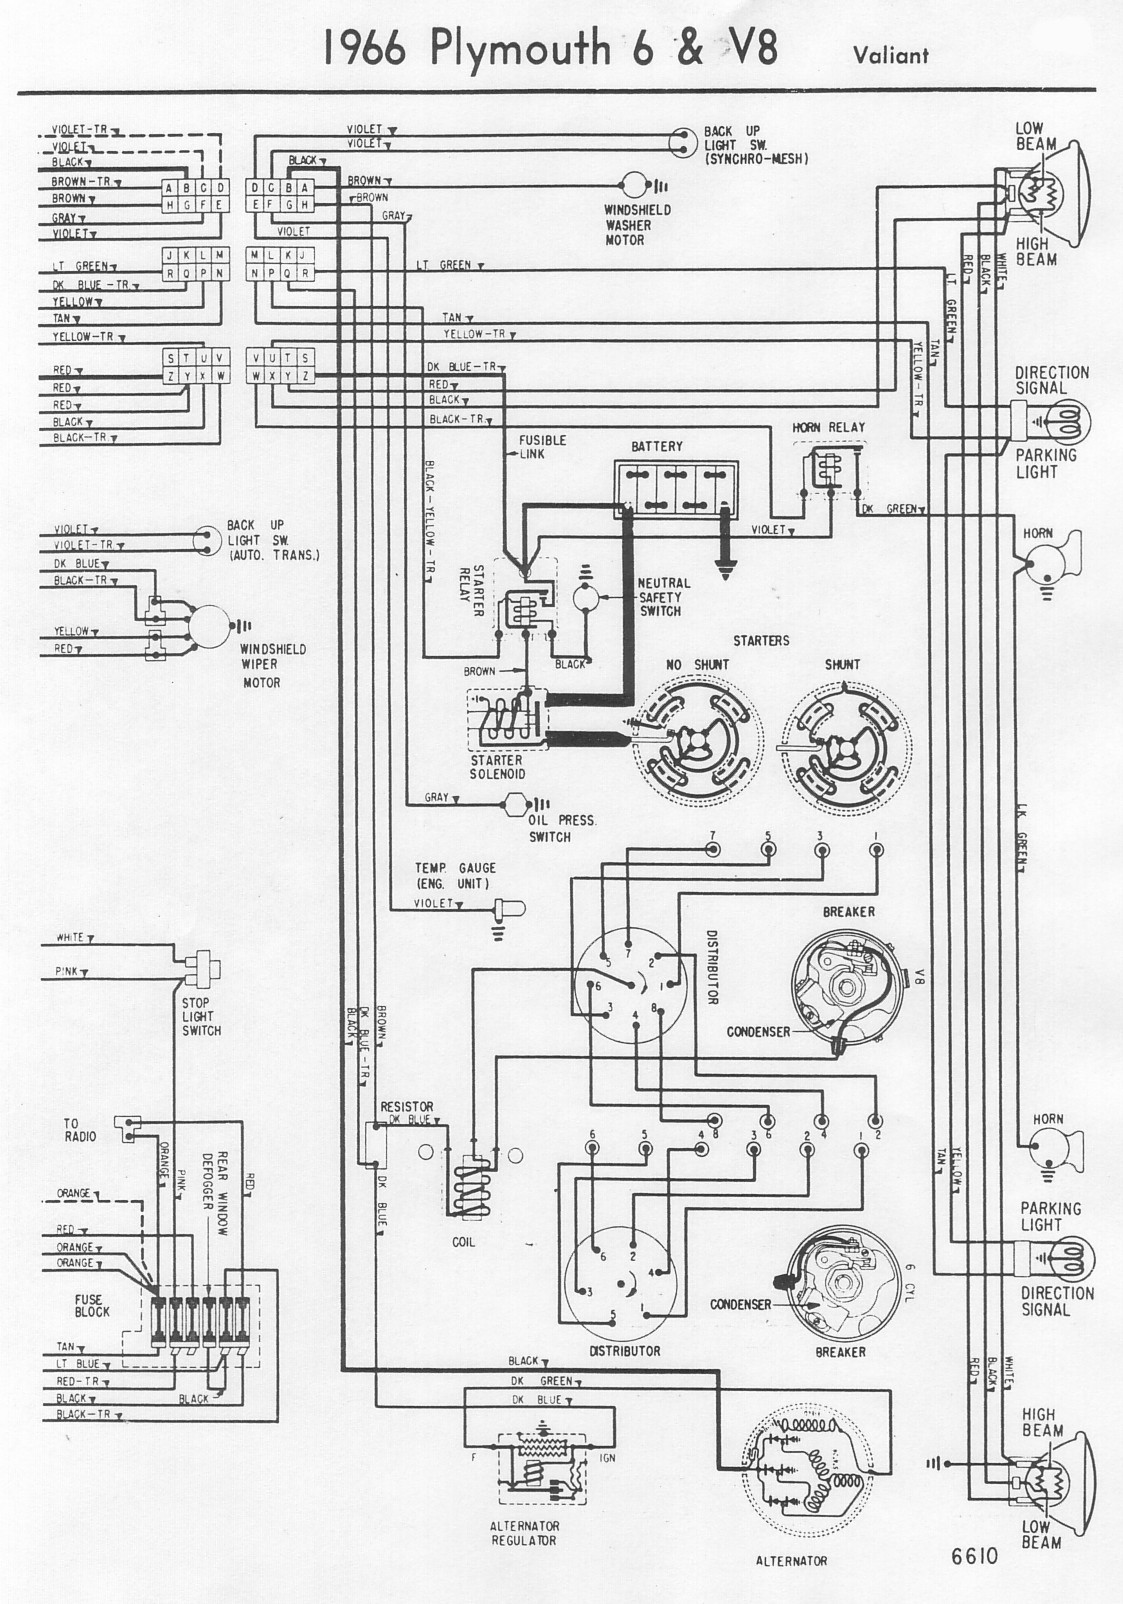 66ValiantB?quality\\=80\\&strip\\=all 1976 suzuki dr 250 wiring diagram suzuki gsx 750 wiring diagram ttr 250 wiring diagram at crackthecode.co